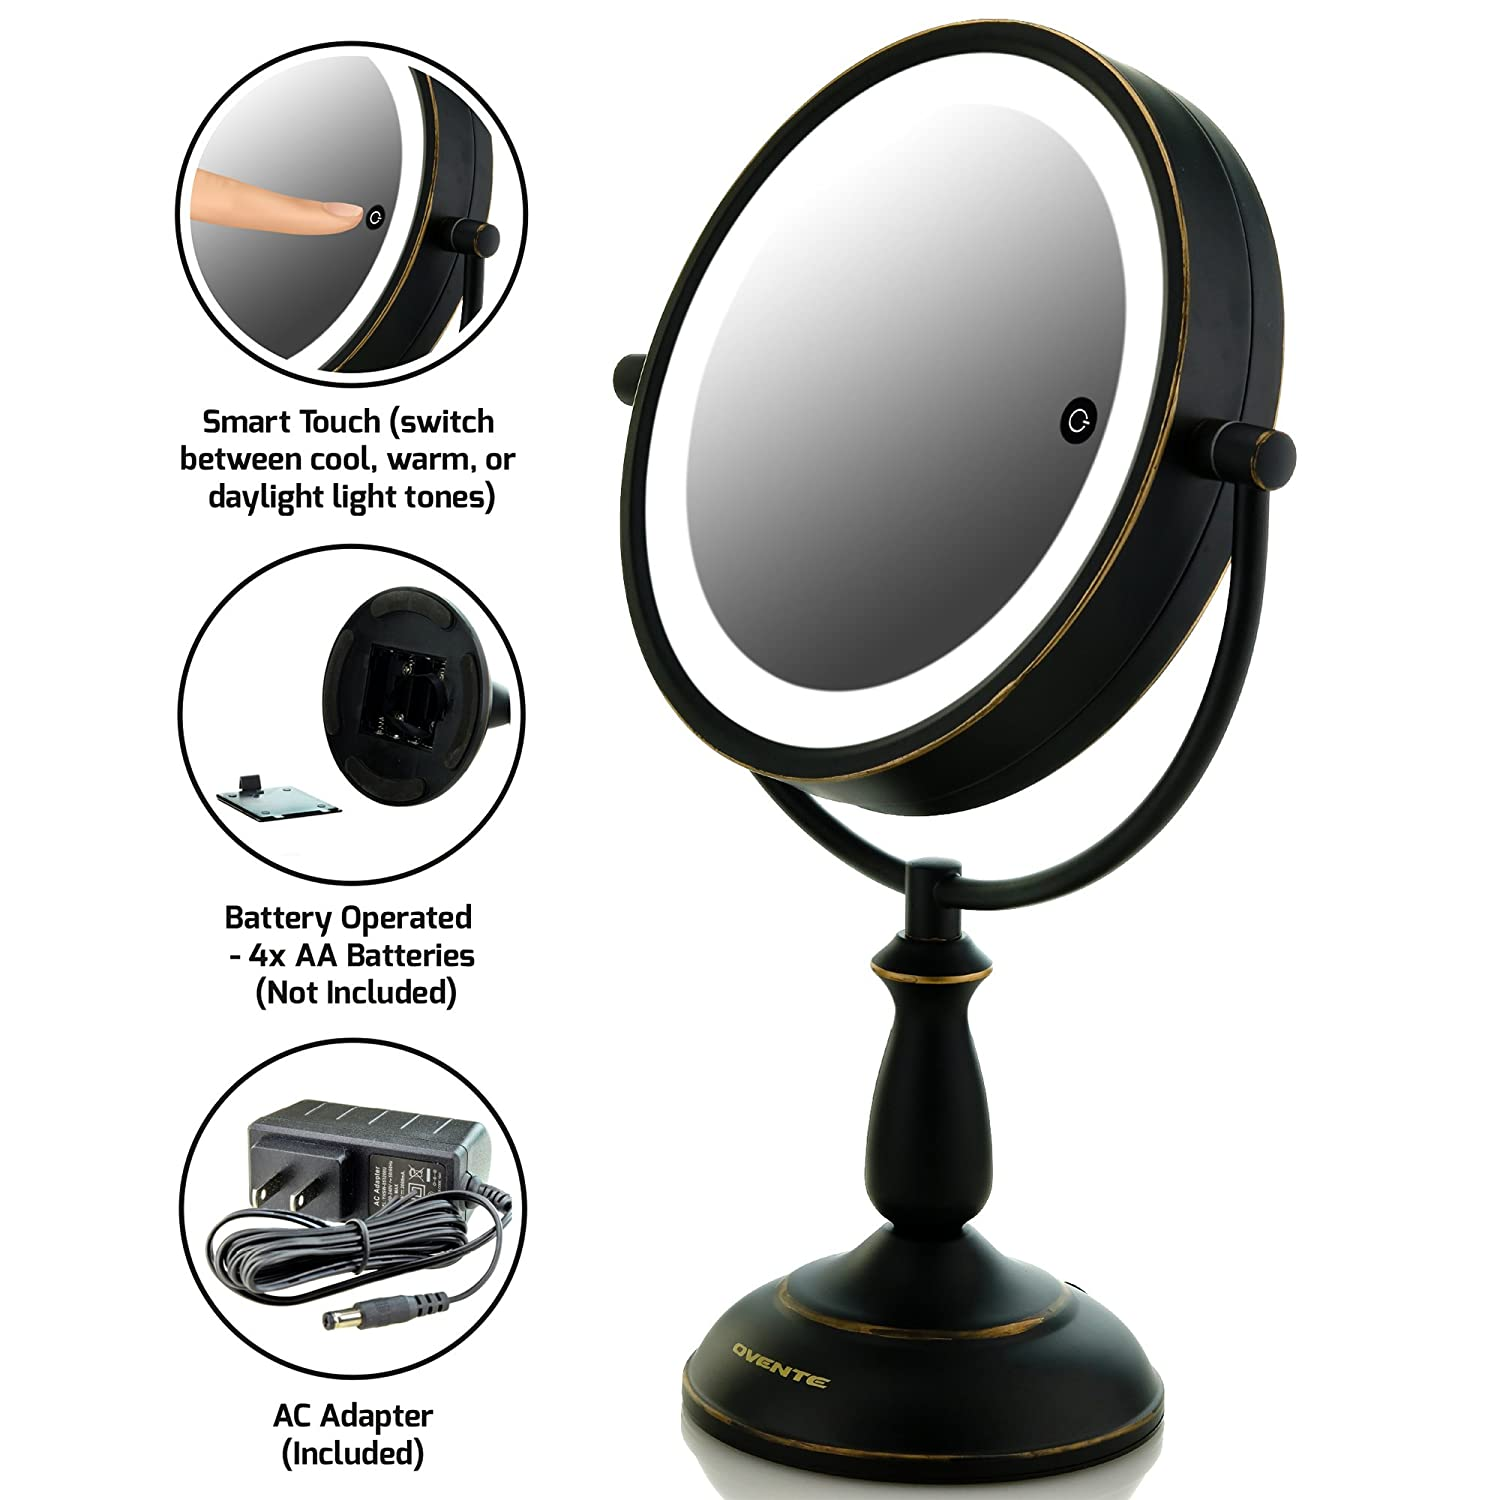 Ovente MPT75BR Multi Touch Tabletop Makeup Mirror with 3 Tone LED Light Option, 7.5 inch, 1x/10x Magnification, Brushed Ovente (Beauty) MPT75BR1x10x